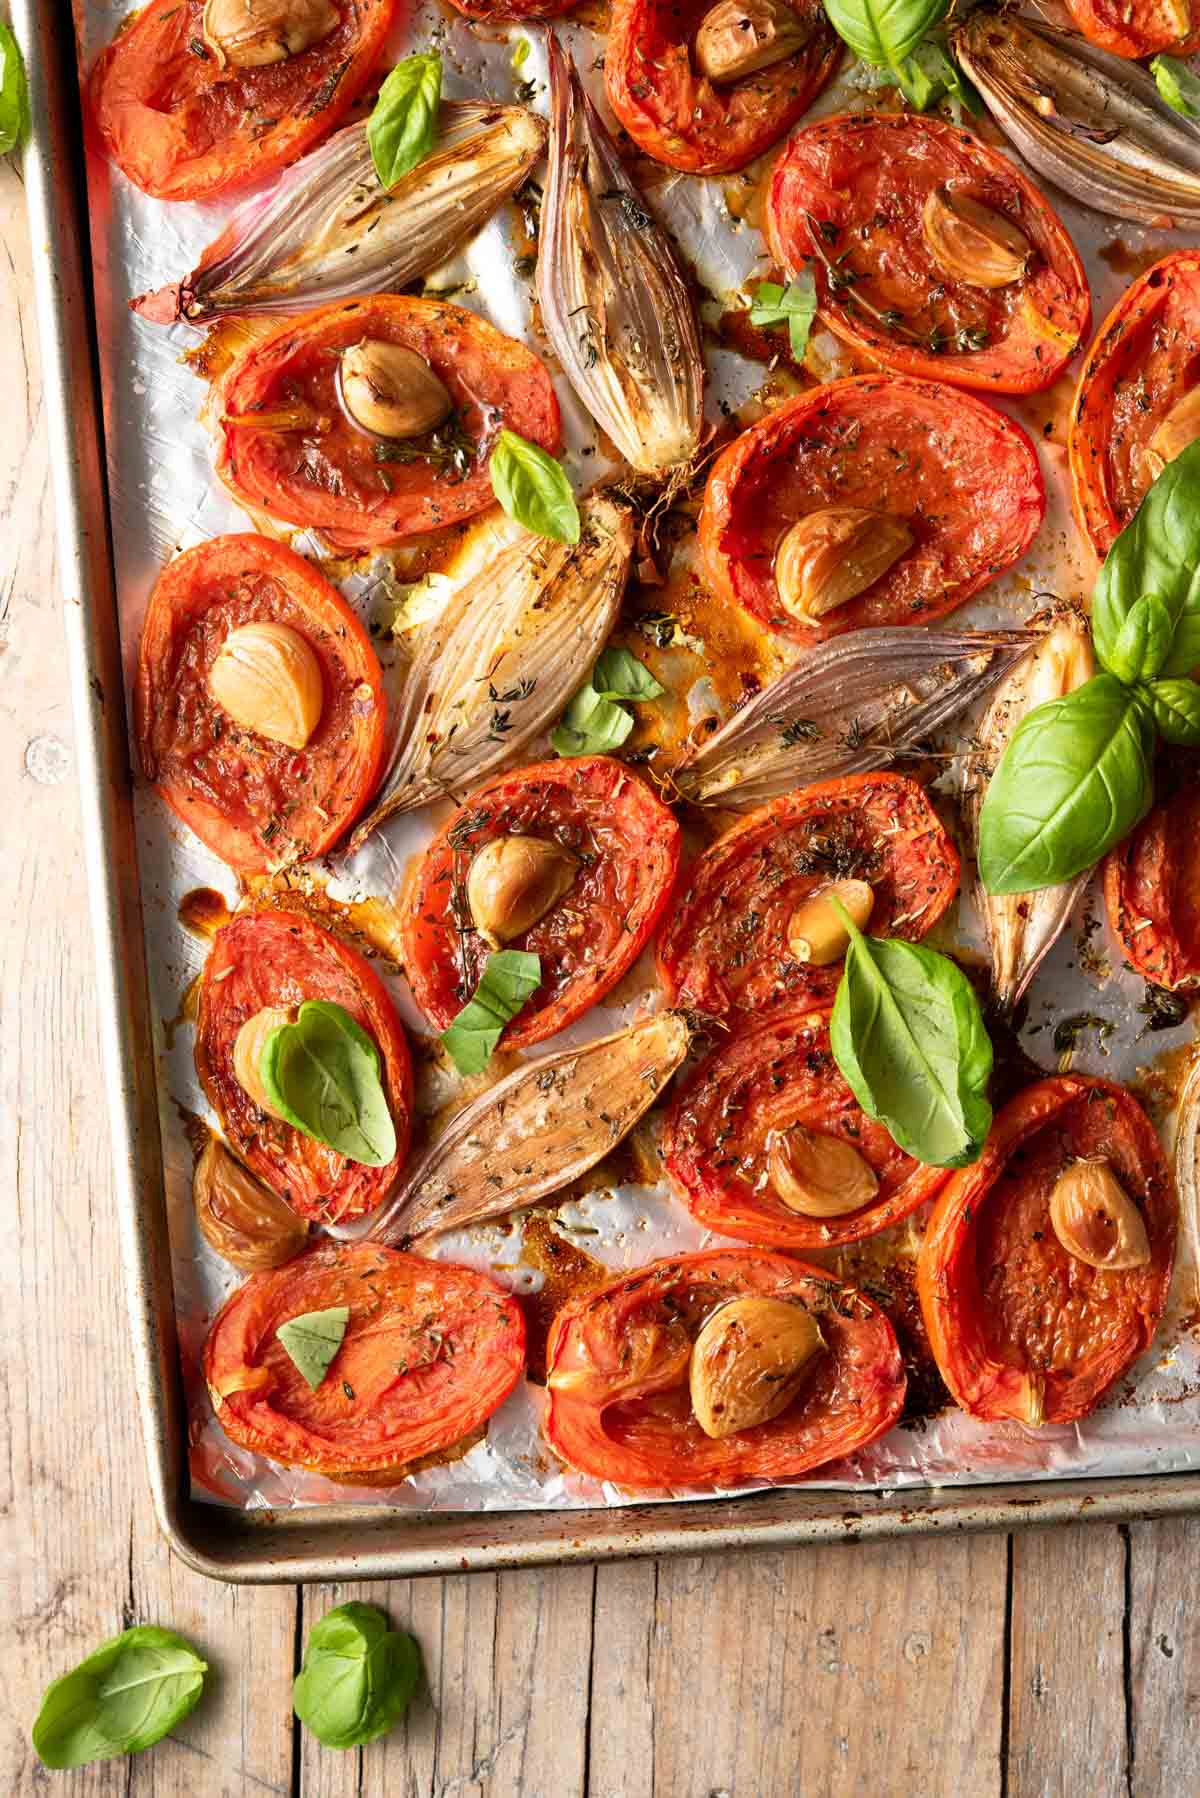 A close up of roasted tomatoes, garlic and shallots on a baking tray